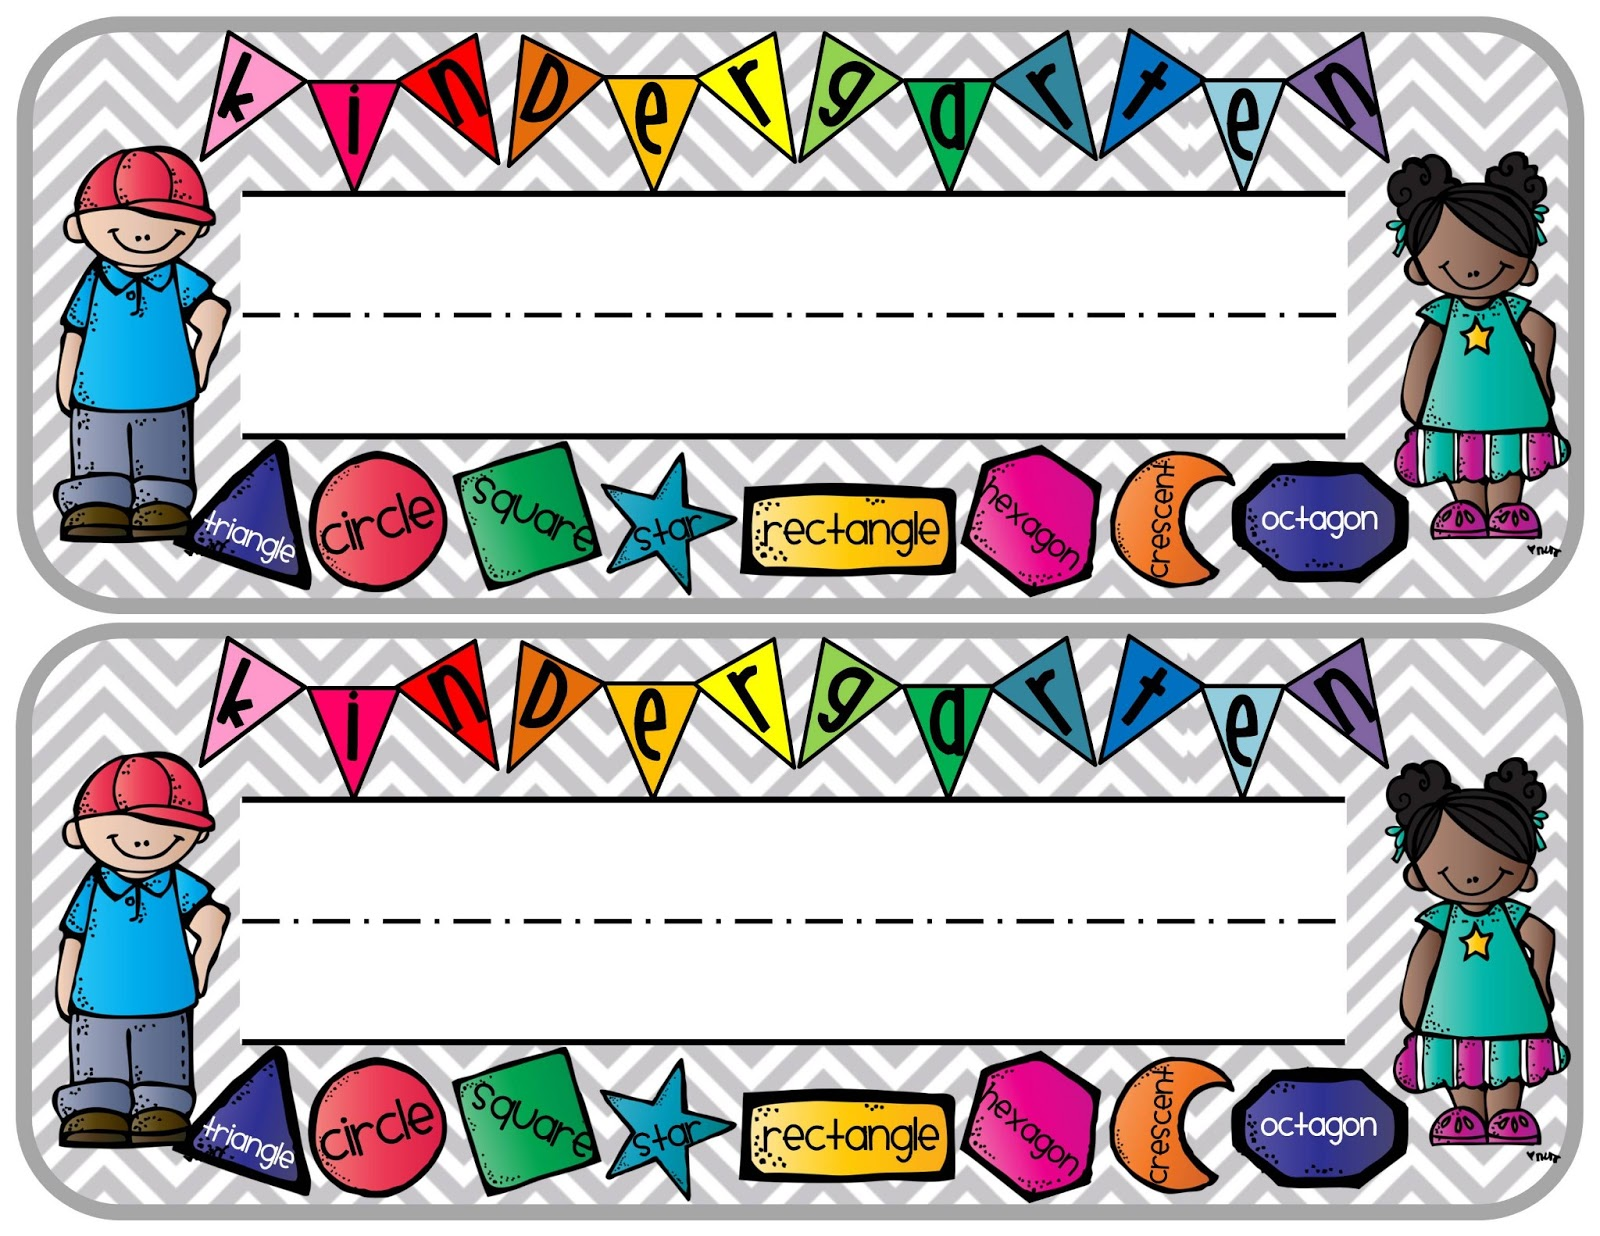 nameplate template free - elementary organization april 2013